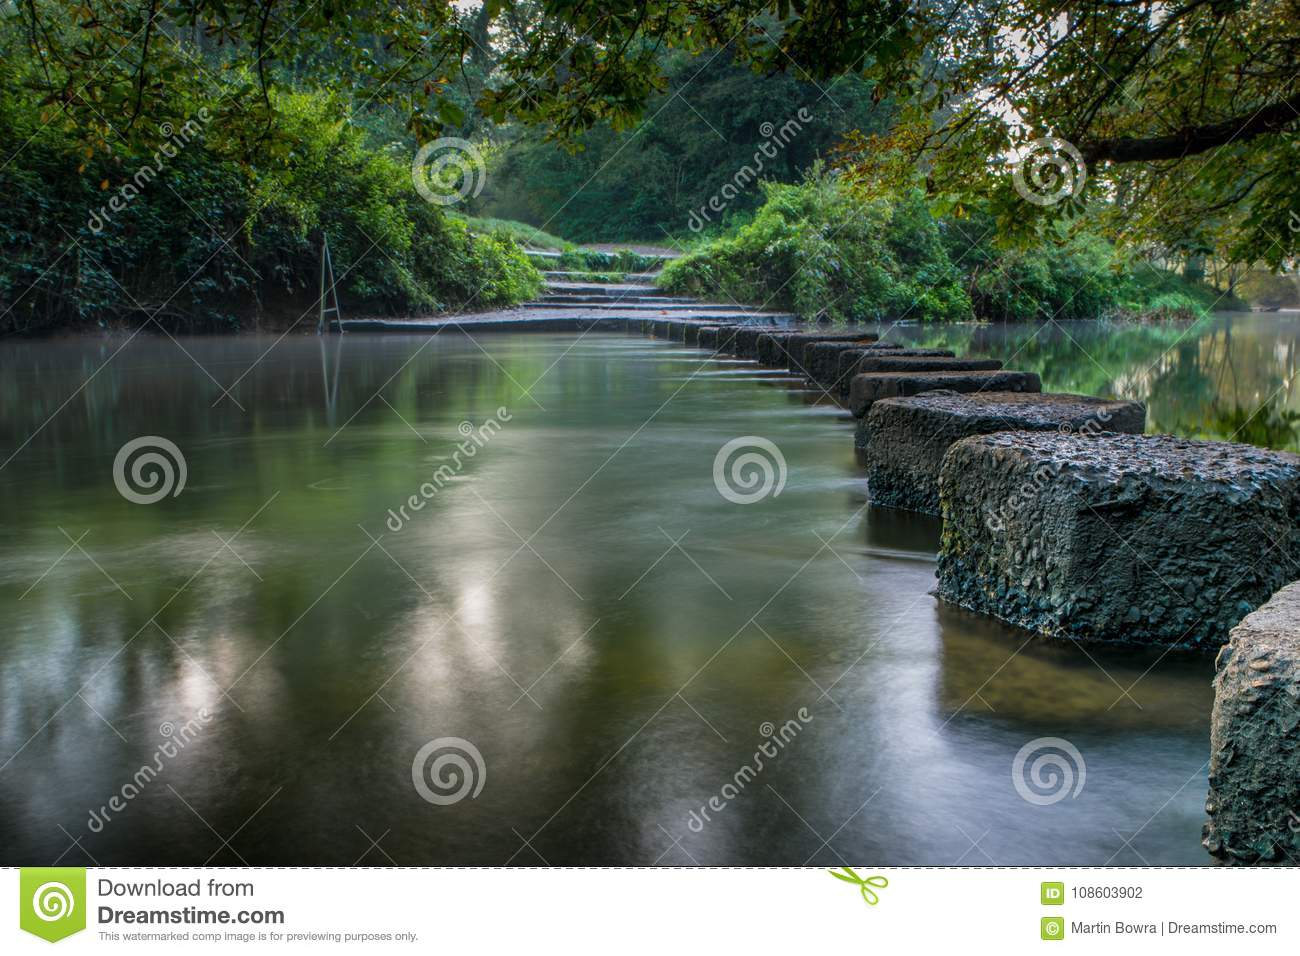 The Famous Stepping Stones At Boxhill In Surrey England Going Across River Mole